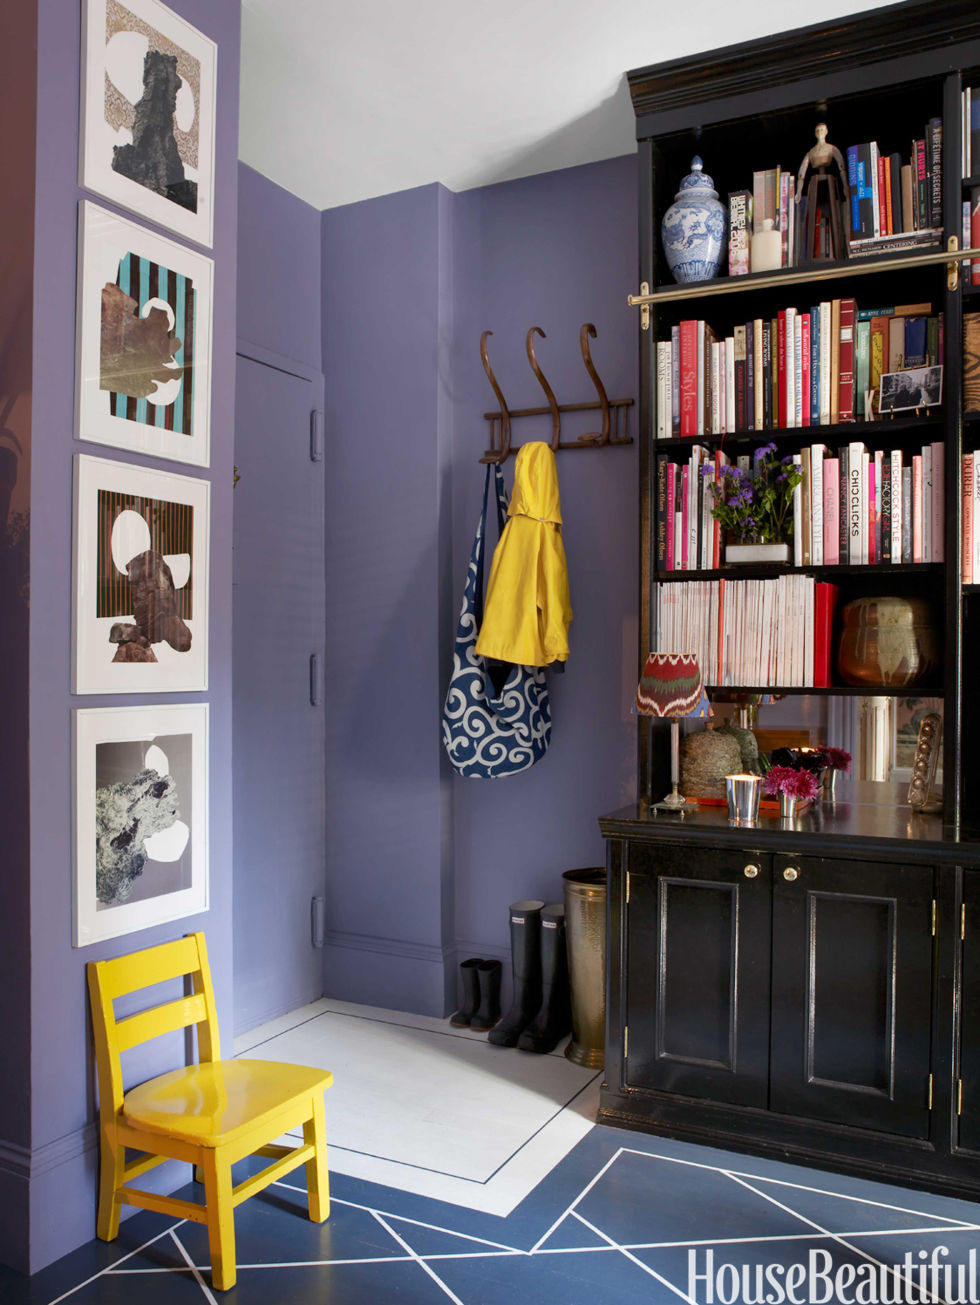 Maximize Space In Small Bedroom Small Space Design Ideas How To Make The Most Of A Small Space